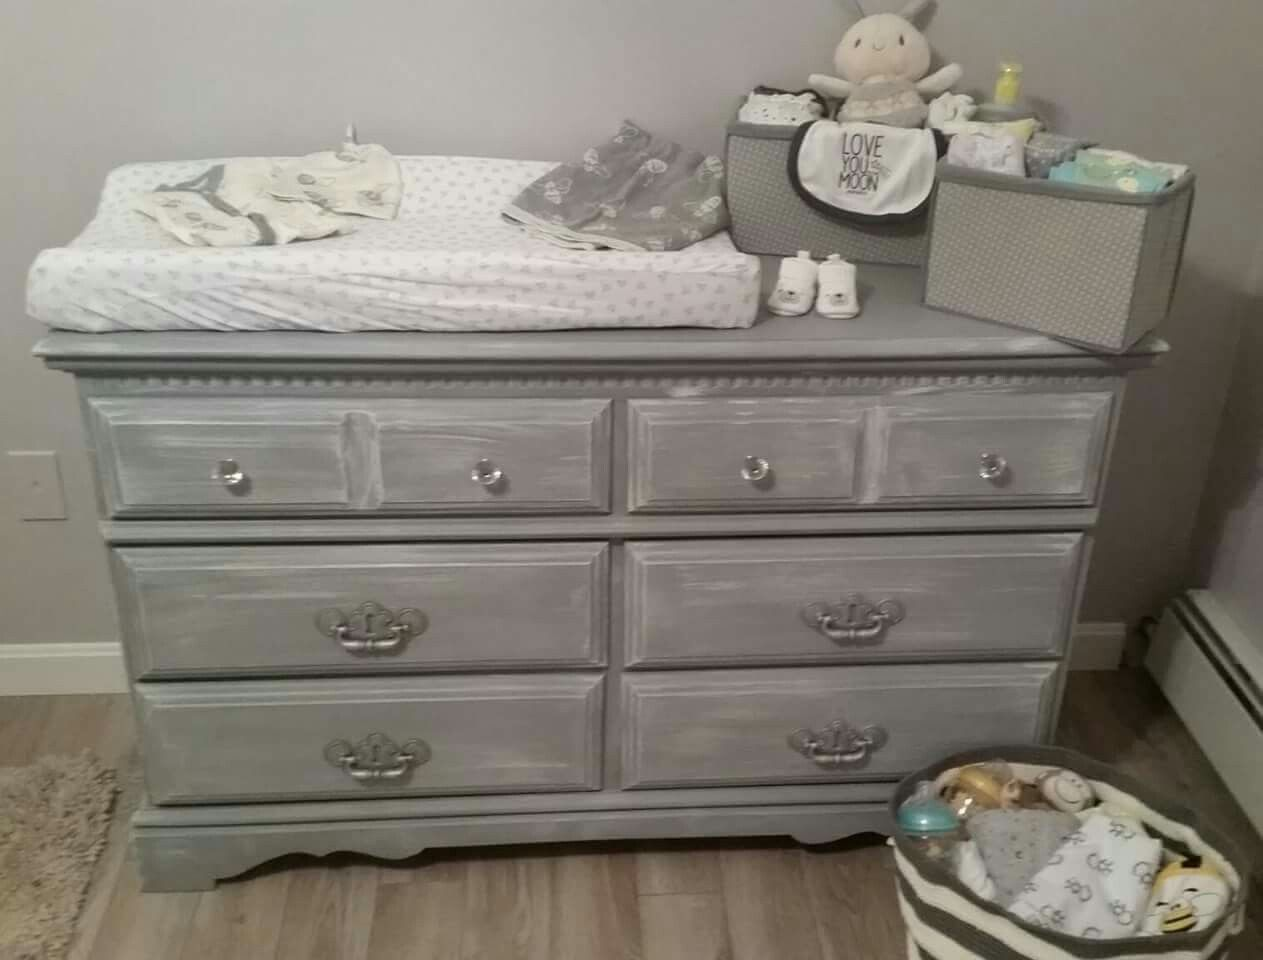 This Is The Matching Dresser Made For A Changing Table To Match The Crib I Finished Gr Painted Baby Furniture Crib With Changing Table Painted Dresser Nursery